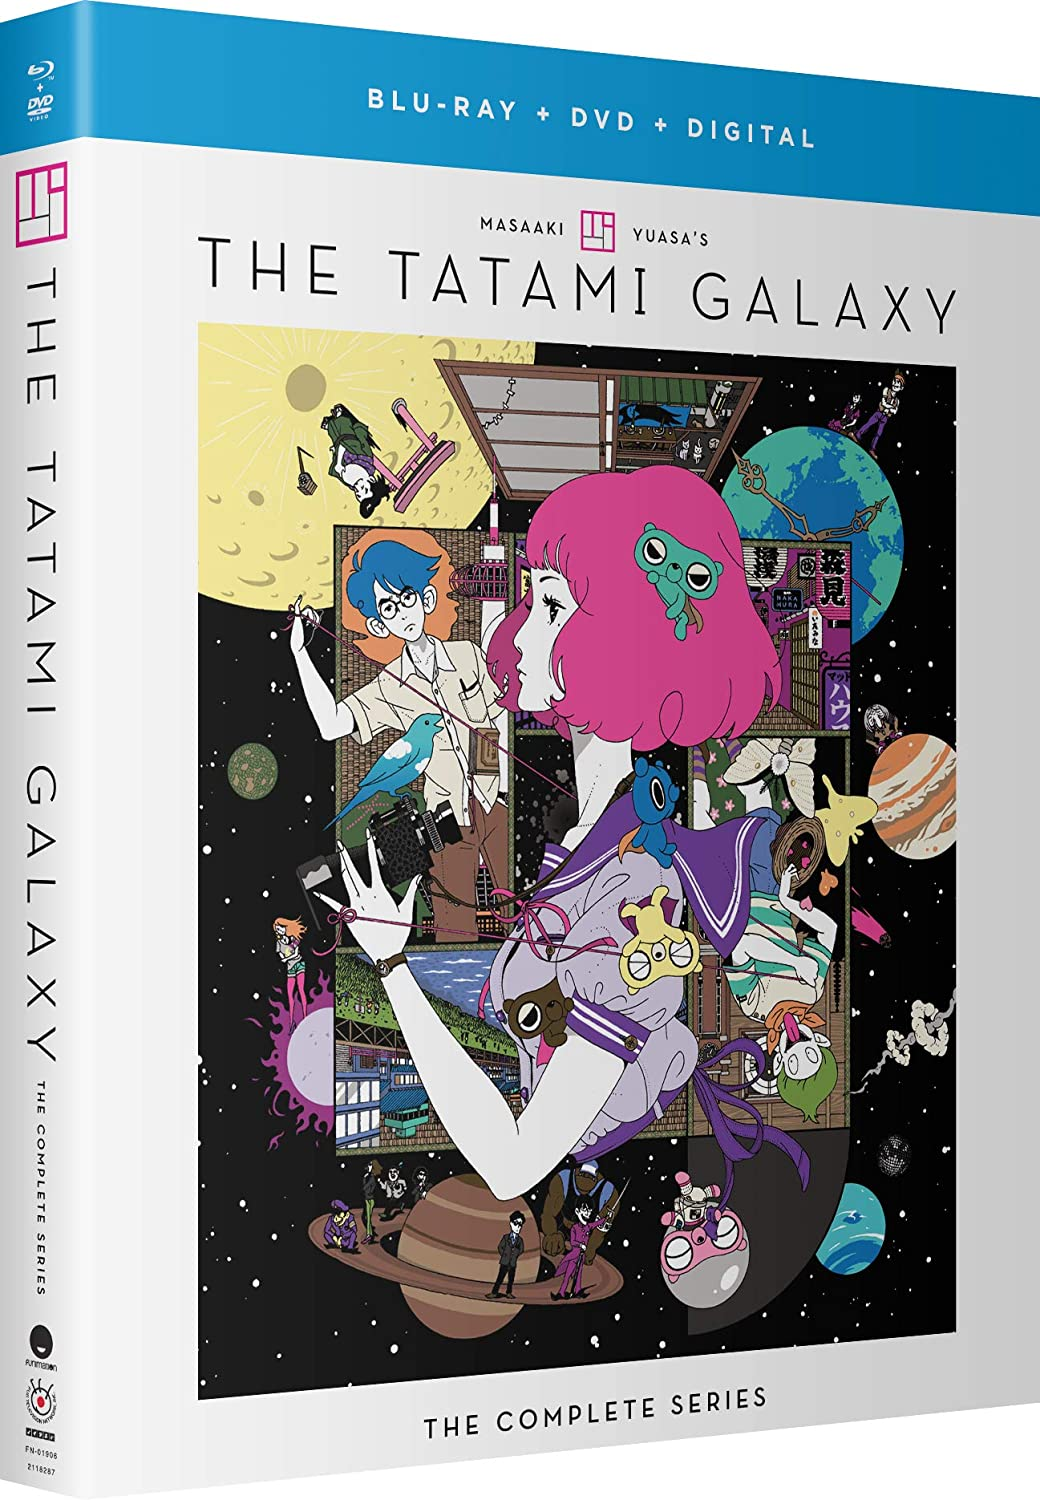 The Tatami Galaxy: The Complete Series - Blu-ray + DVD (Subtitled Only) + Digital